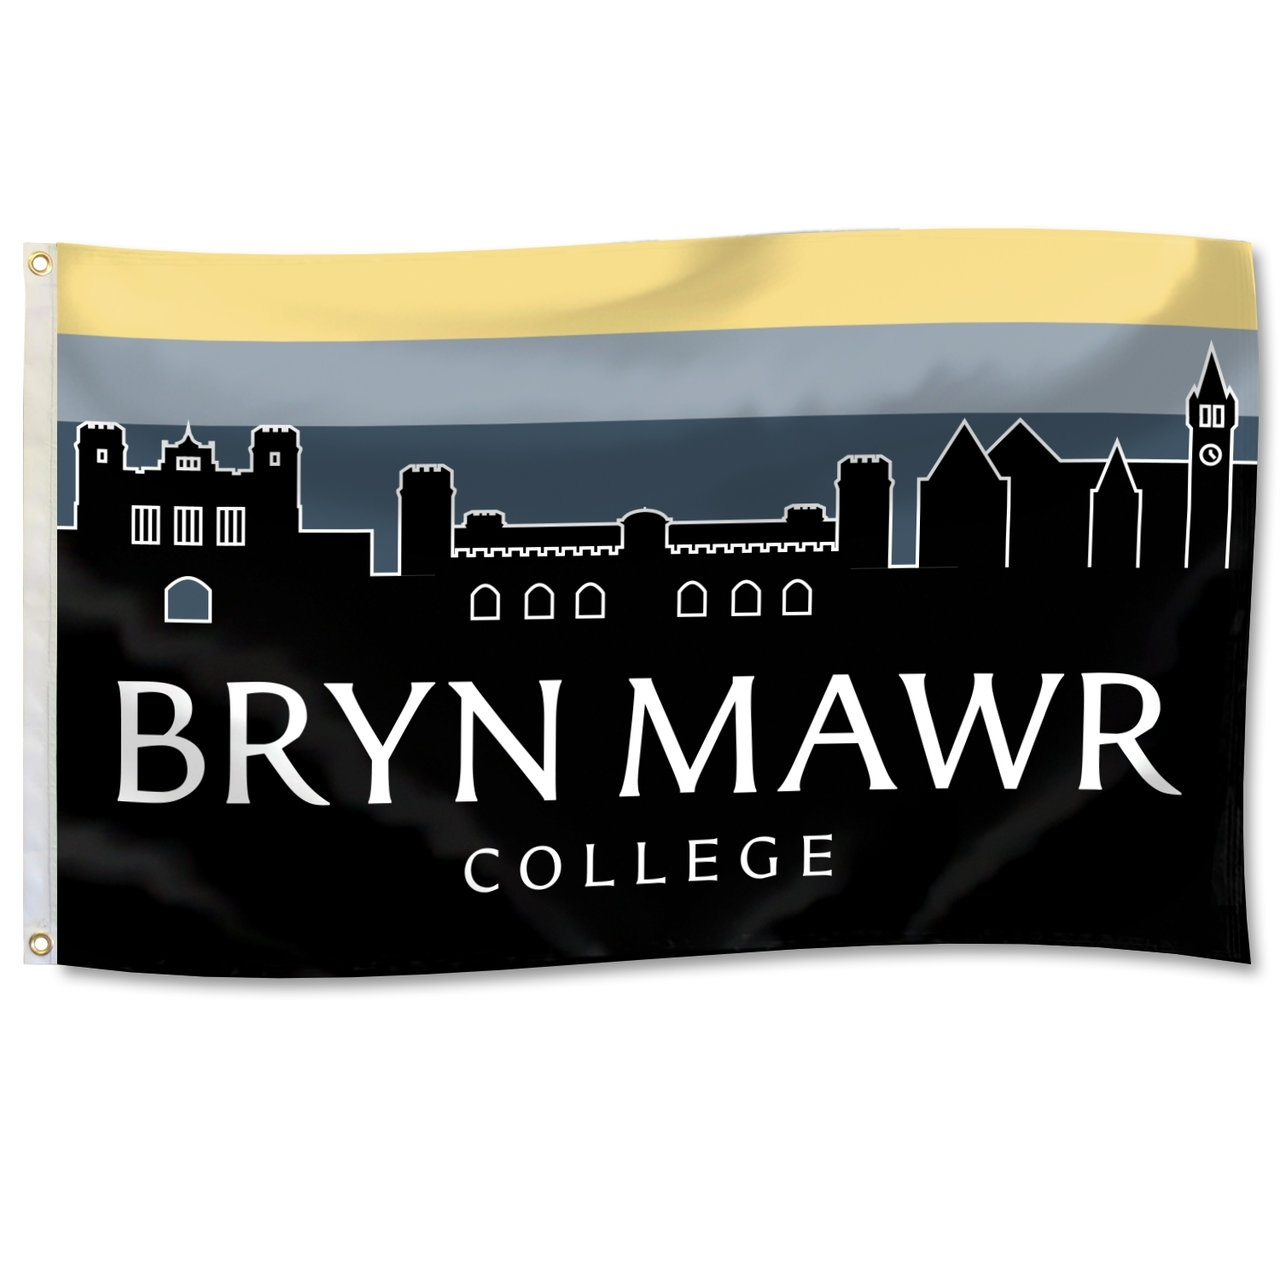 Uscape Durawave 3' X 5' Flag | Bryn Mawr College Bookstore